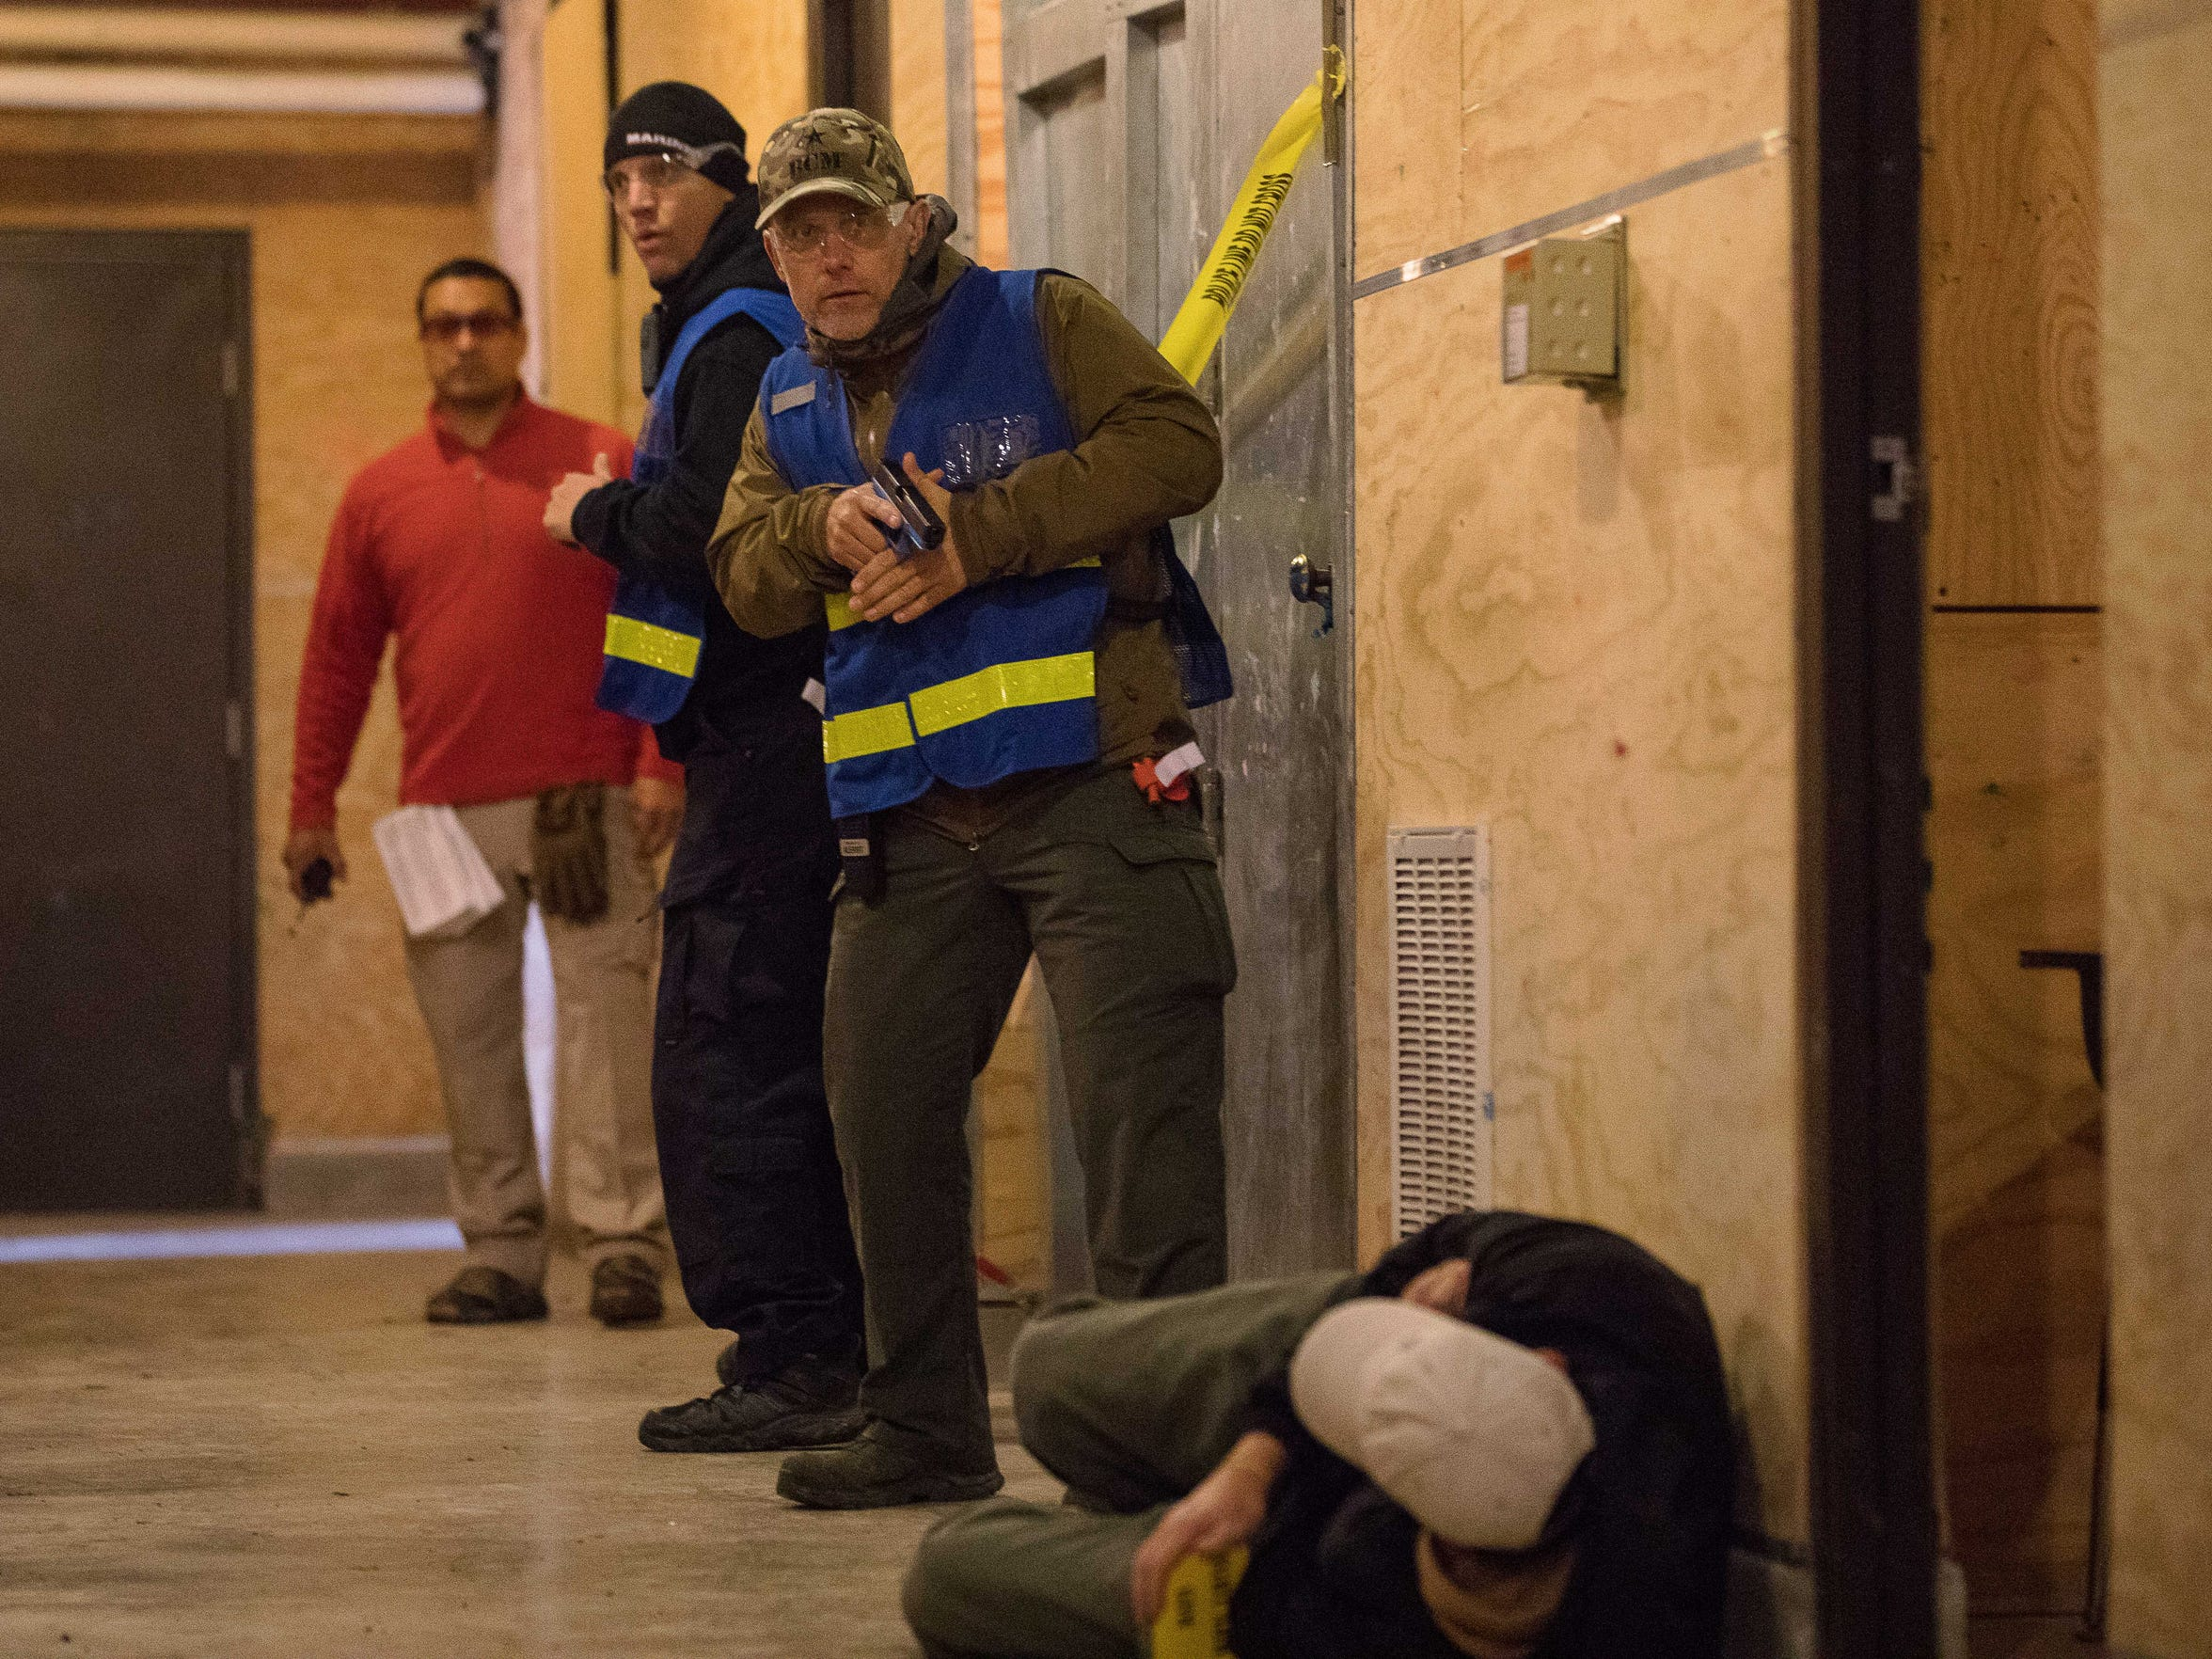 Police officers clear a hallway as they take part in active shooter training conducted by Advanced Law Enforcement Rapid Response Training: Center in Maxwell, Texas on Feb. 14, 2018.